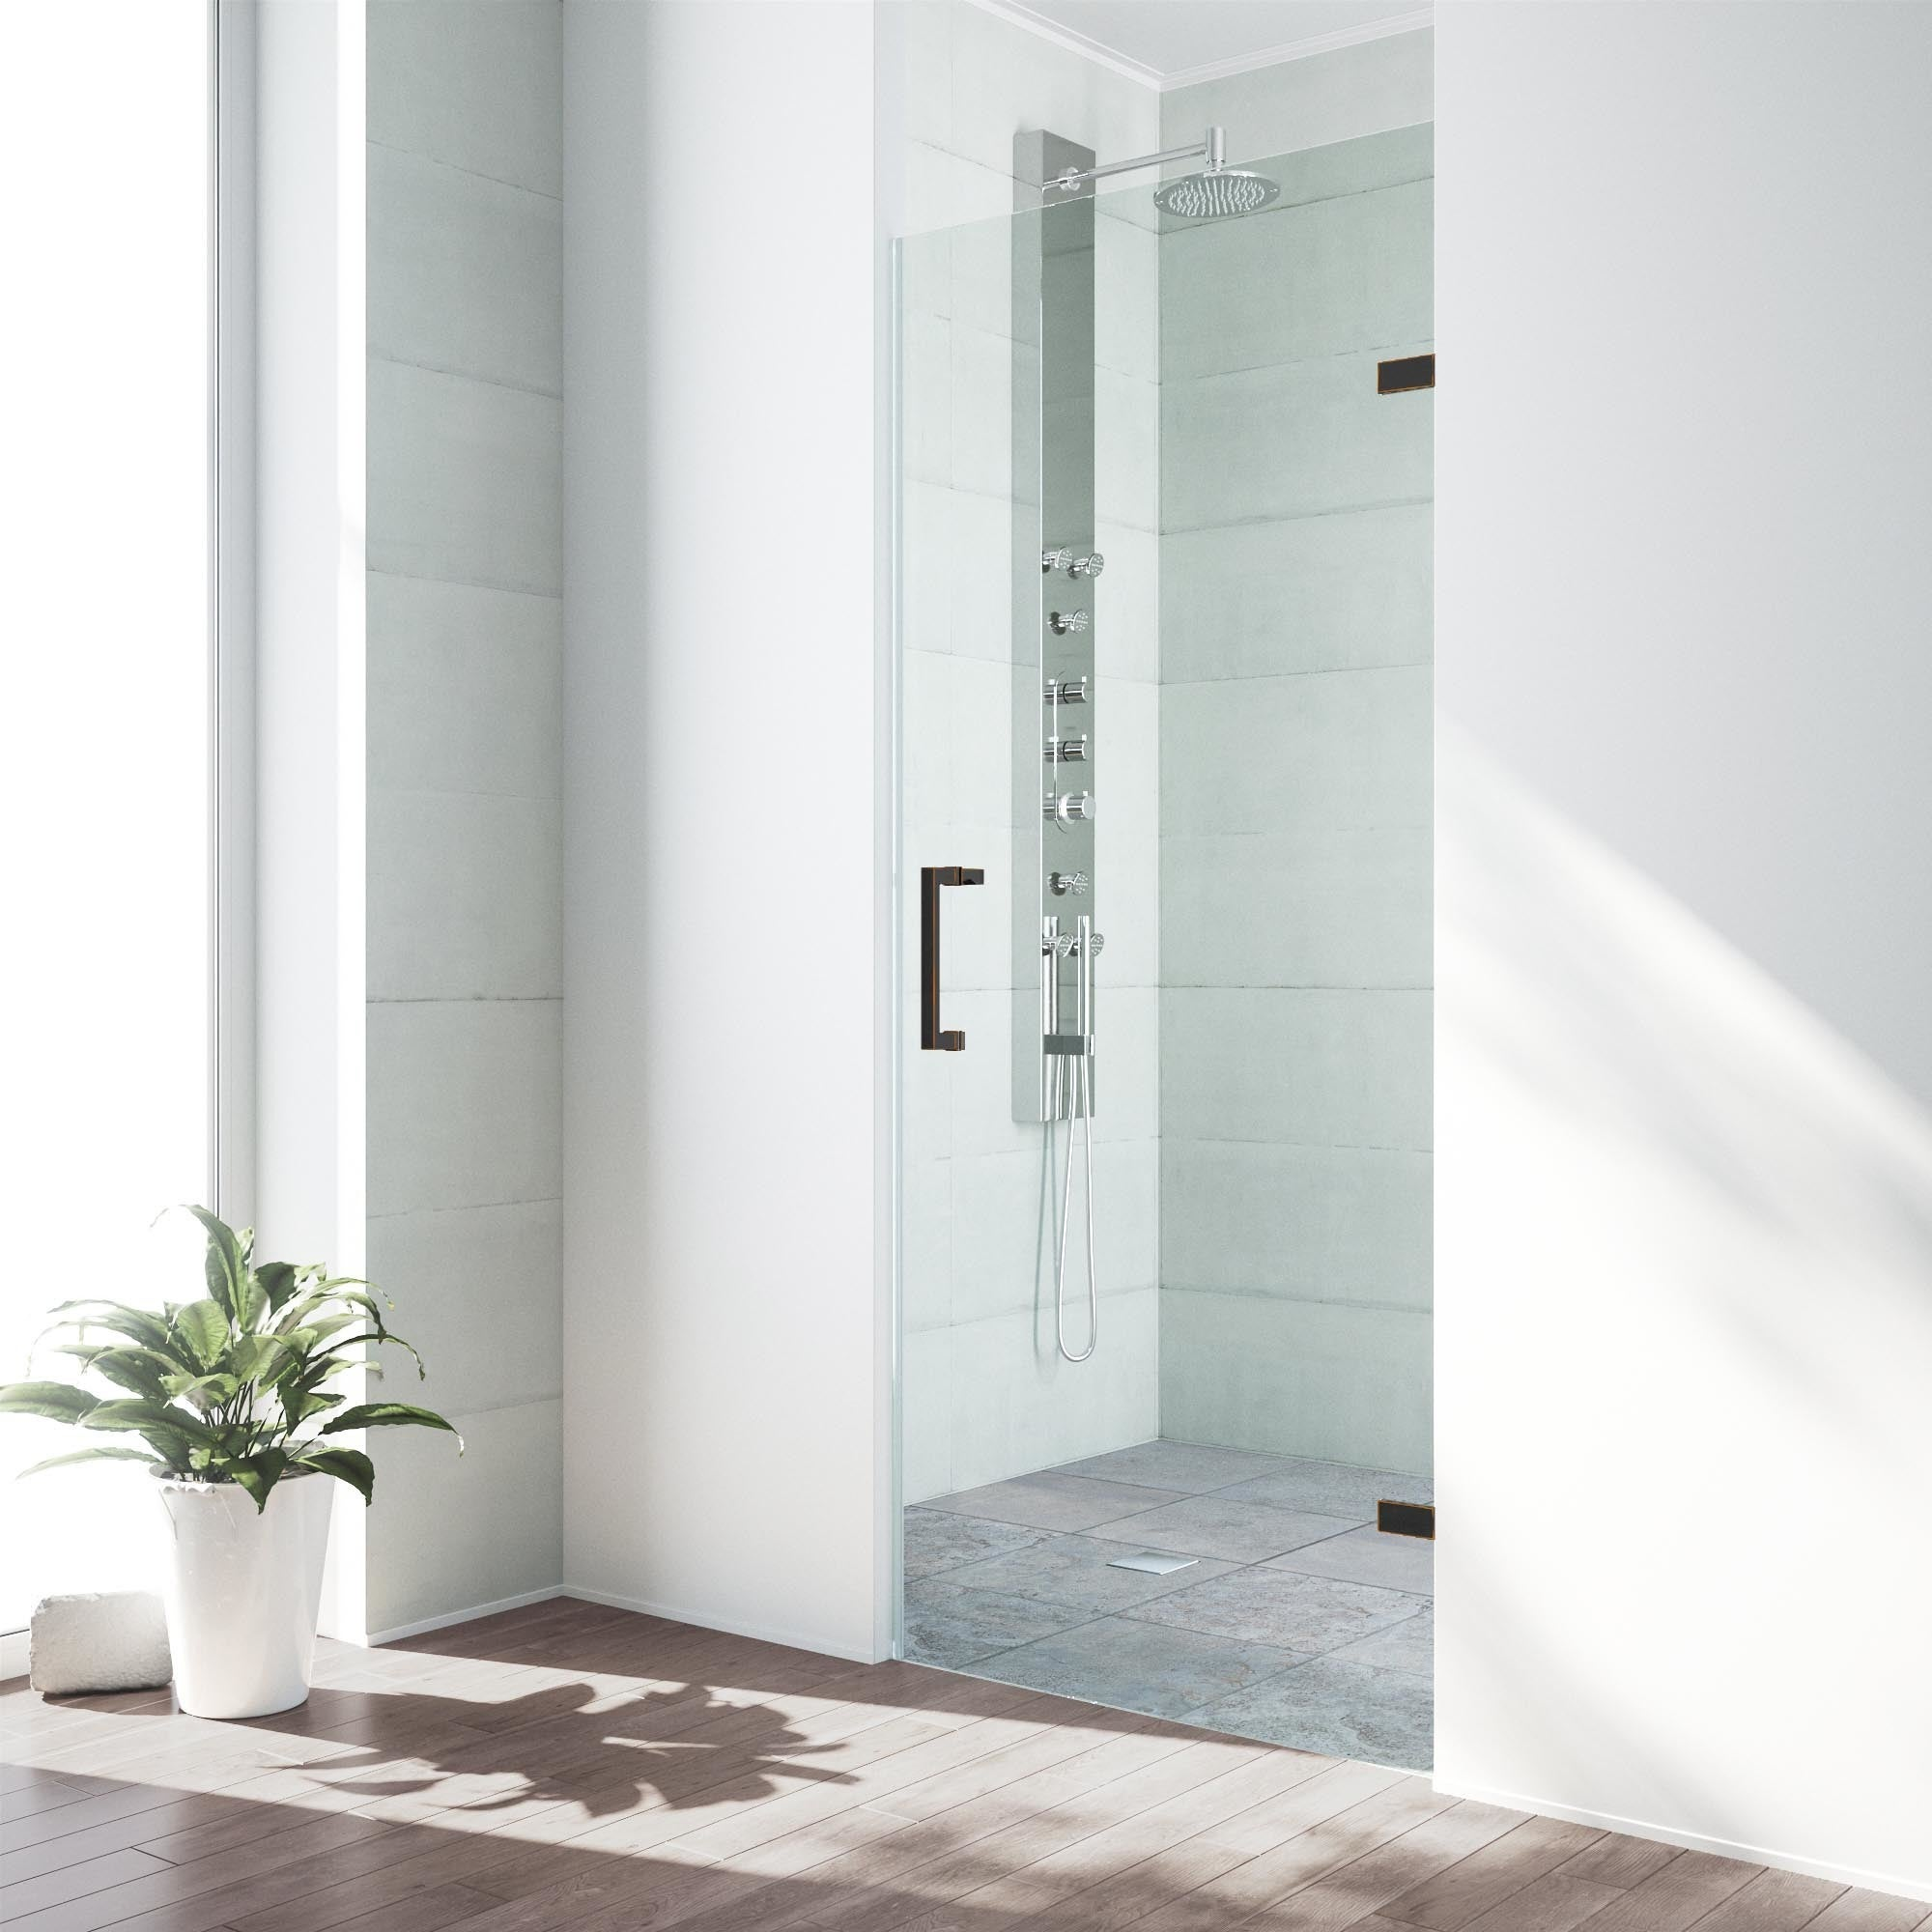 Vigo Soho 30 Inch Adjustable Frameless Shower Door With Clear Glass And Antique Rubbed Bronze Hardware